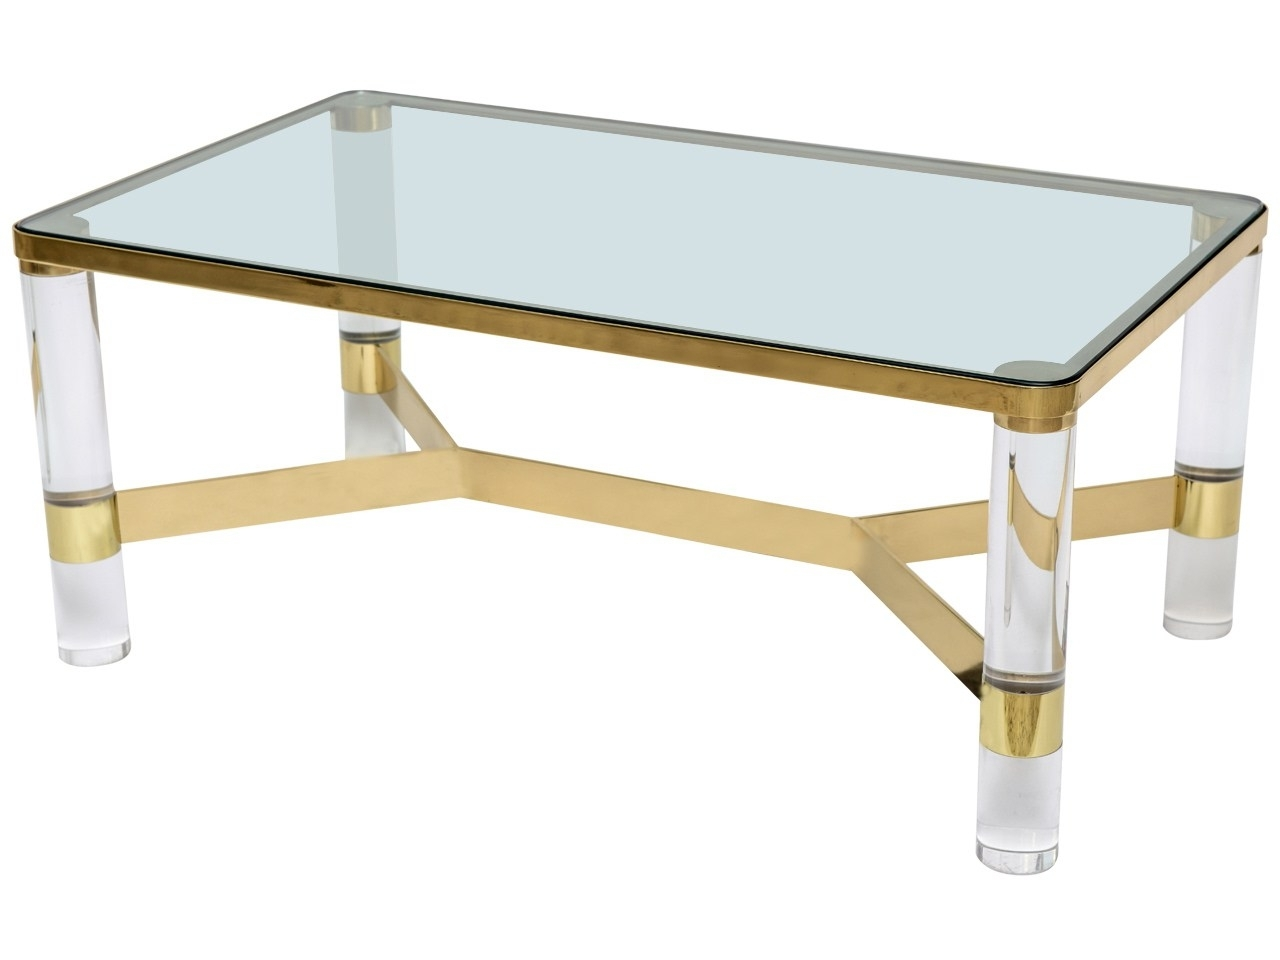 Awesome Plexiglass Coffee Table With A Clear Choicemodern Brass Intended For Latest Acrylic Glass And Brass Coffee Tables (Gallery 1 of 20)